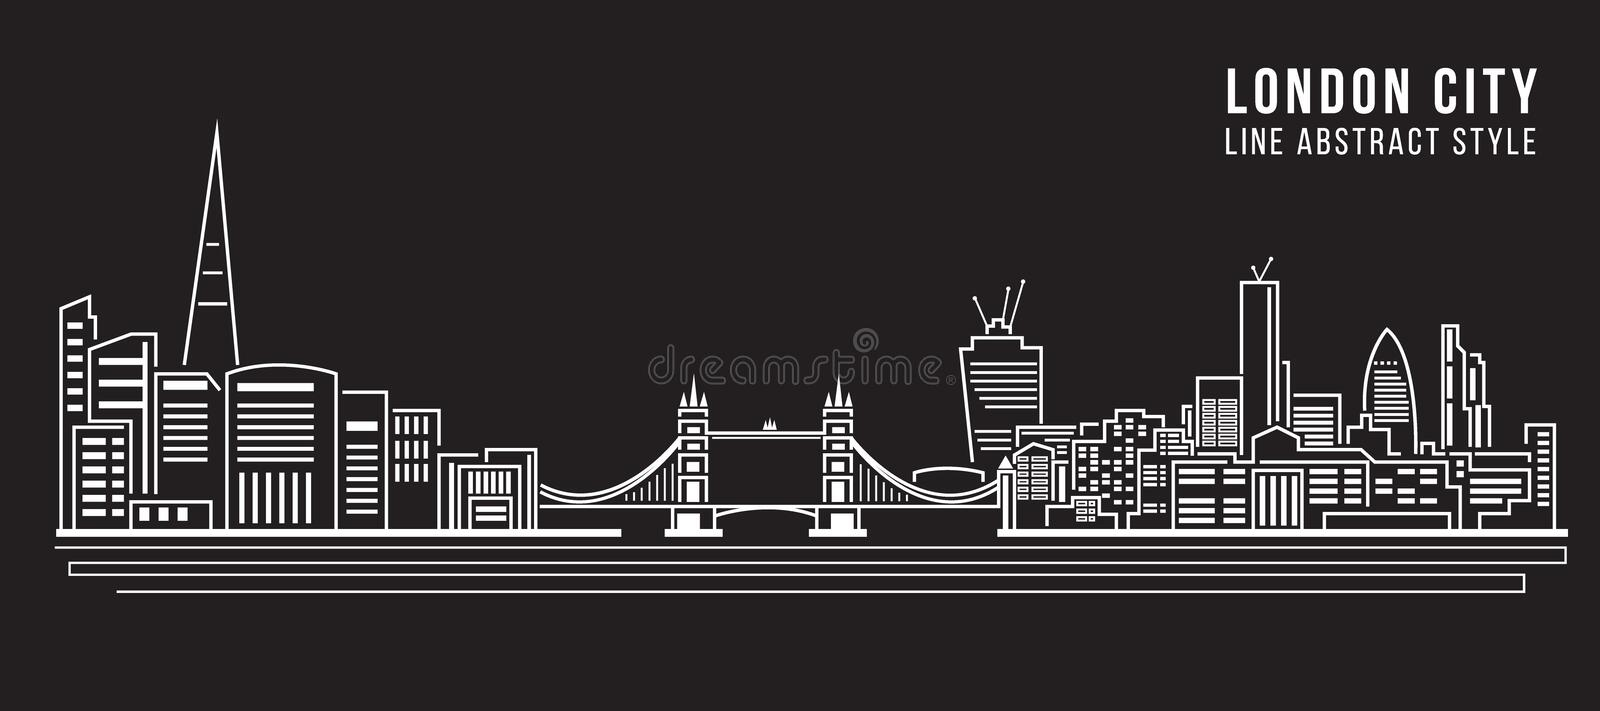 Cityscapebyggnadslinje design för konstvektorillustration - London stad stock illustrationer